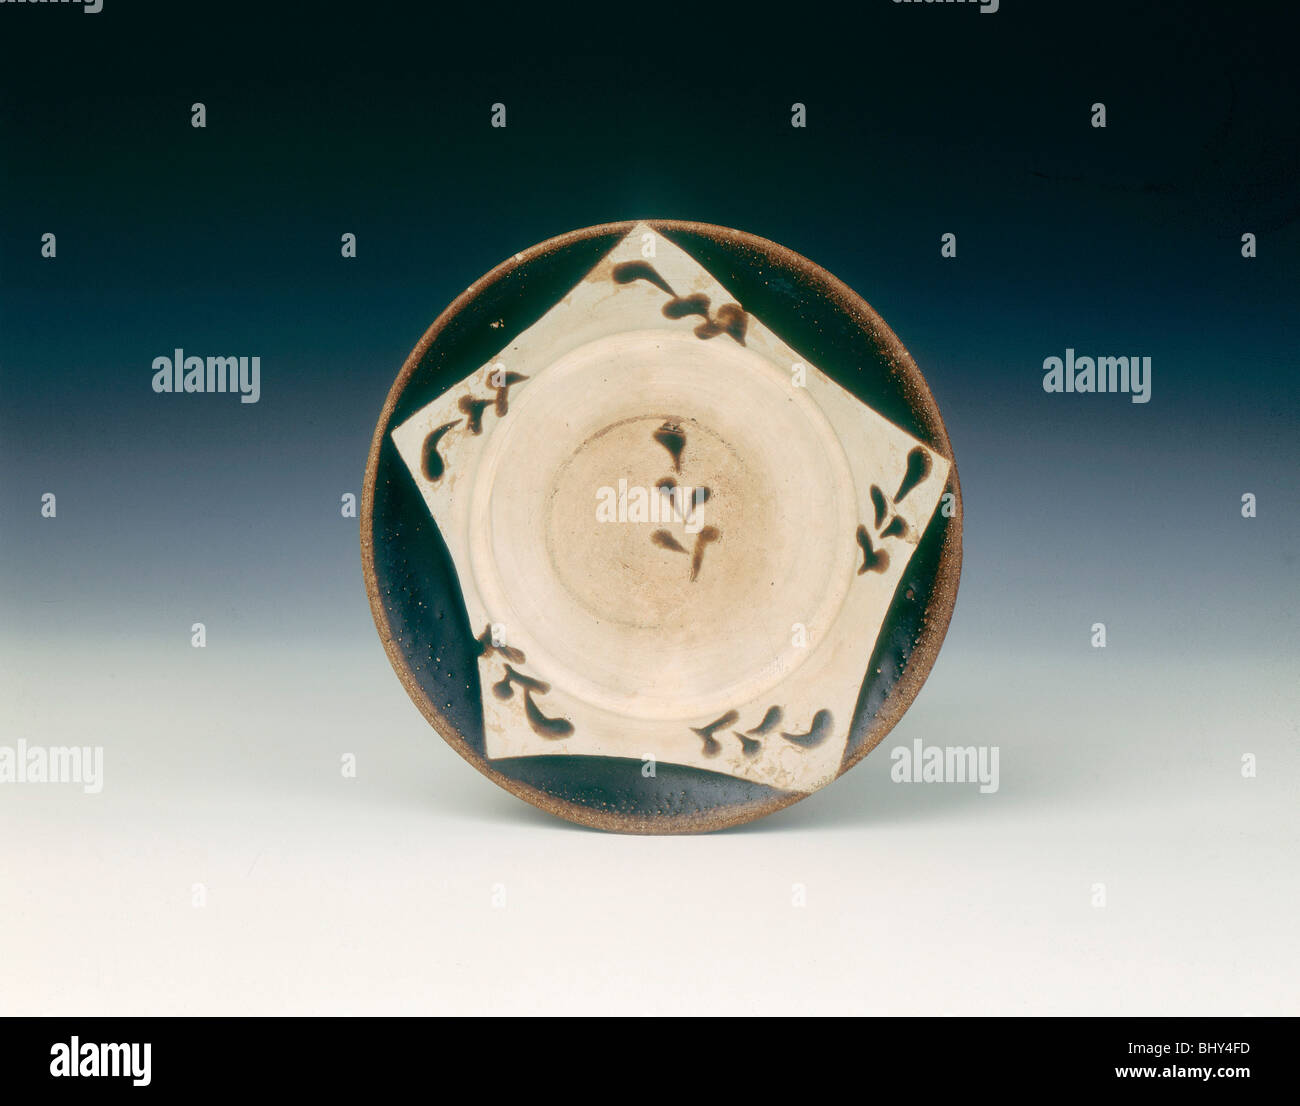 Yaozhou dish, Late Tang dynasty, China, 9th-early 10th century. - Stock Image